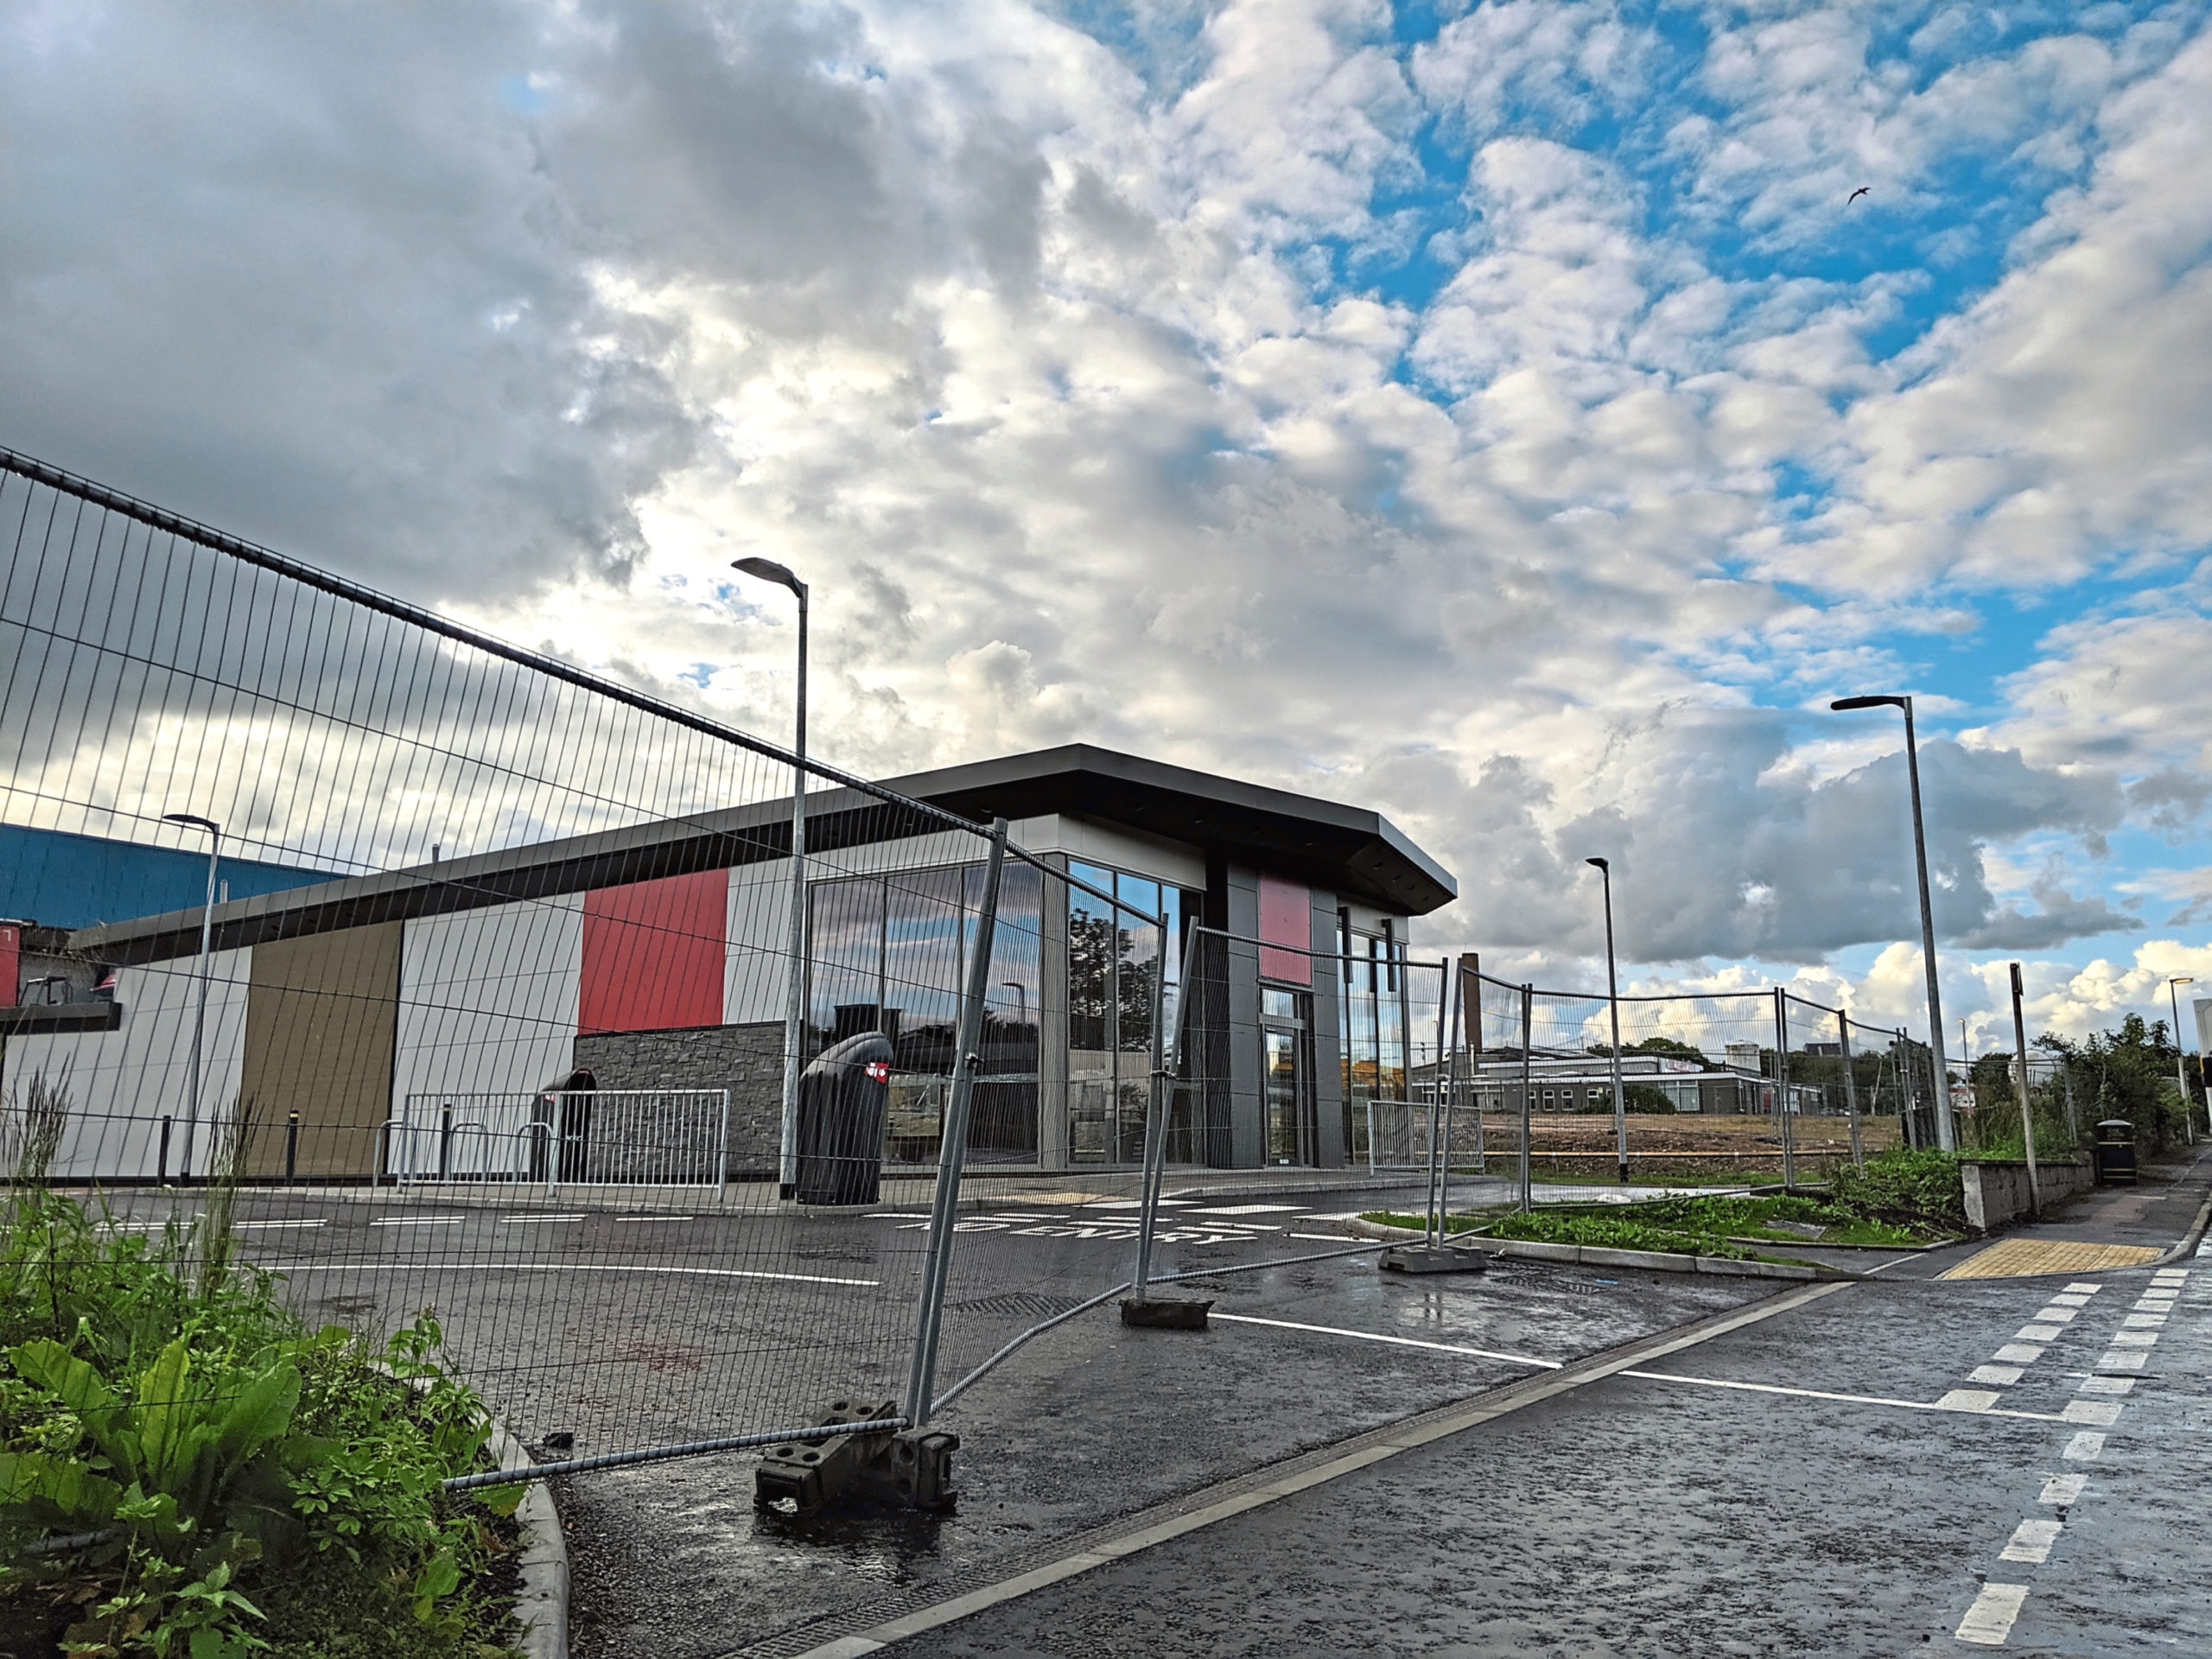 Plans to build a new Starbucks in Bridge of Don were rejected